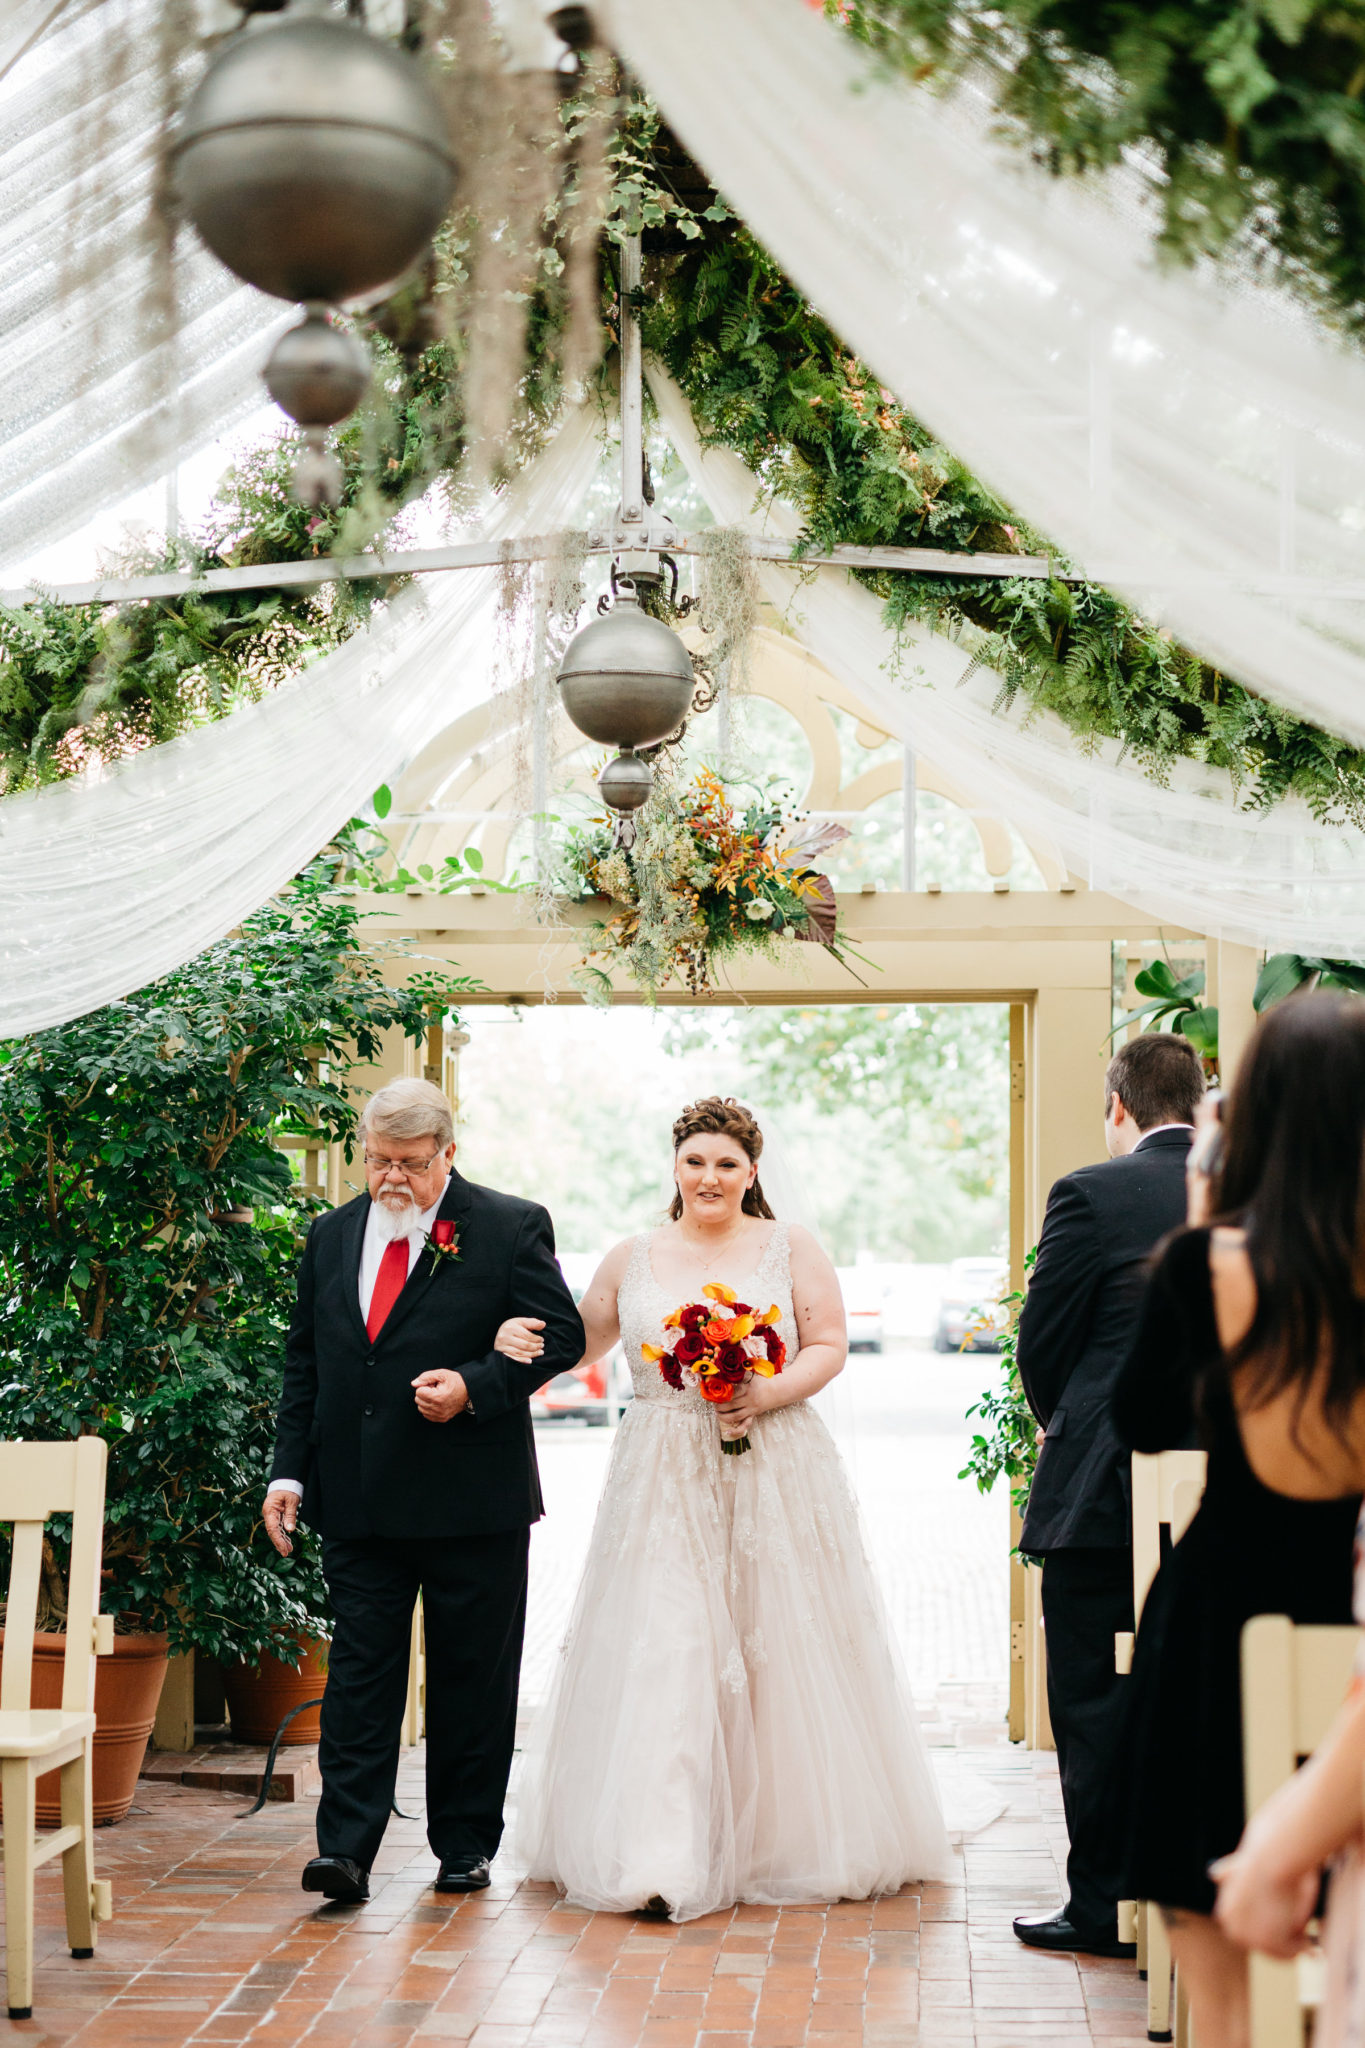 REAL WEDDING | Fall Missouri Wedding at The Conservatory | Zoe Life Photography | Pretty Pear Bride